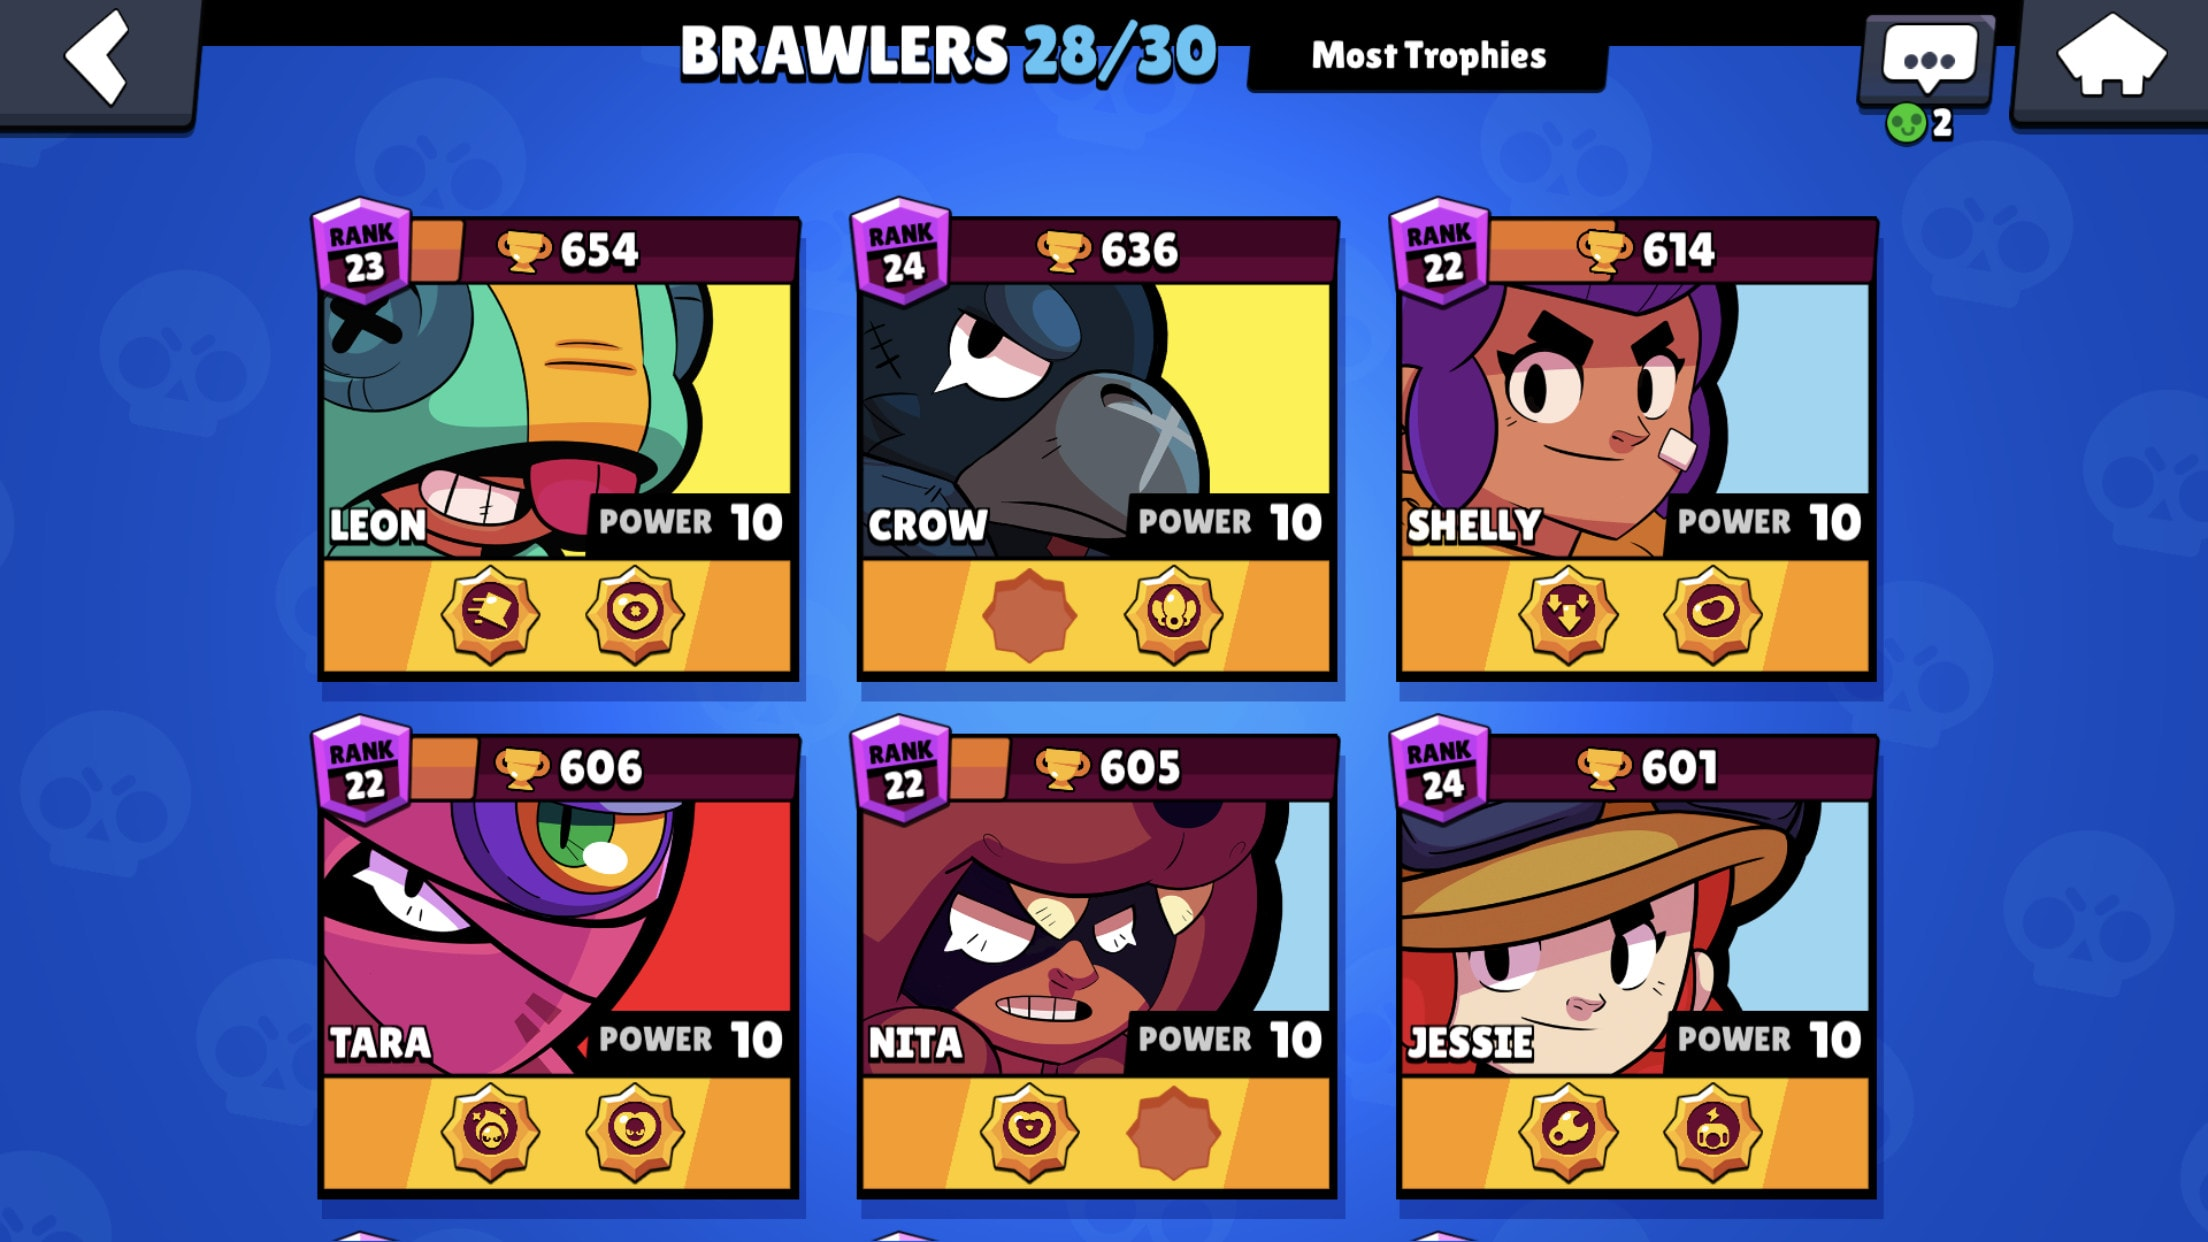 Push trophies in brawl stars by Swagner360